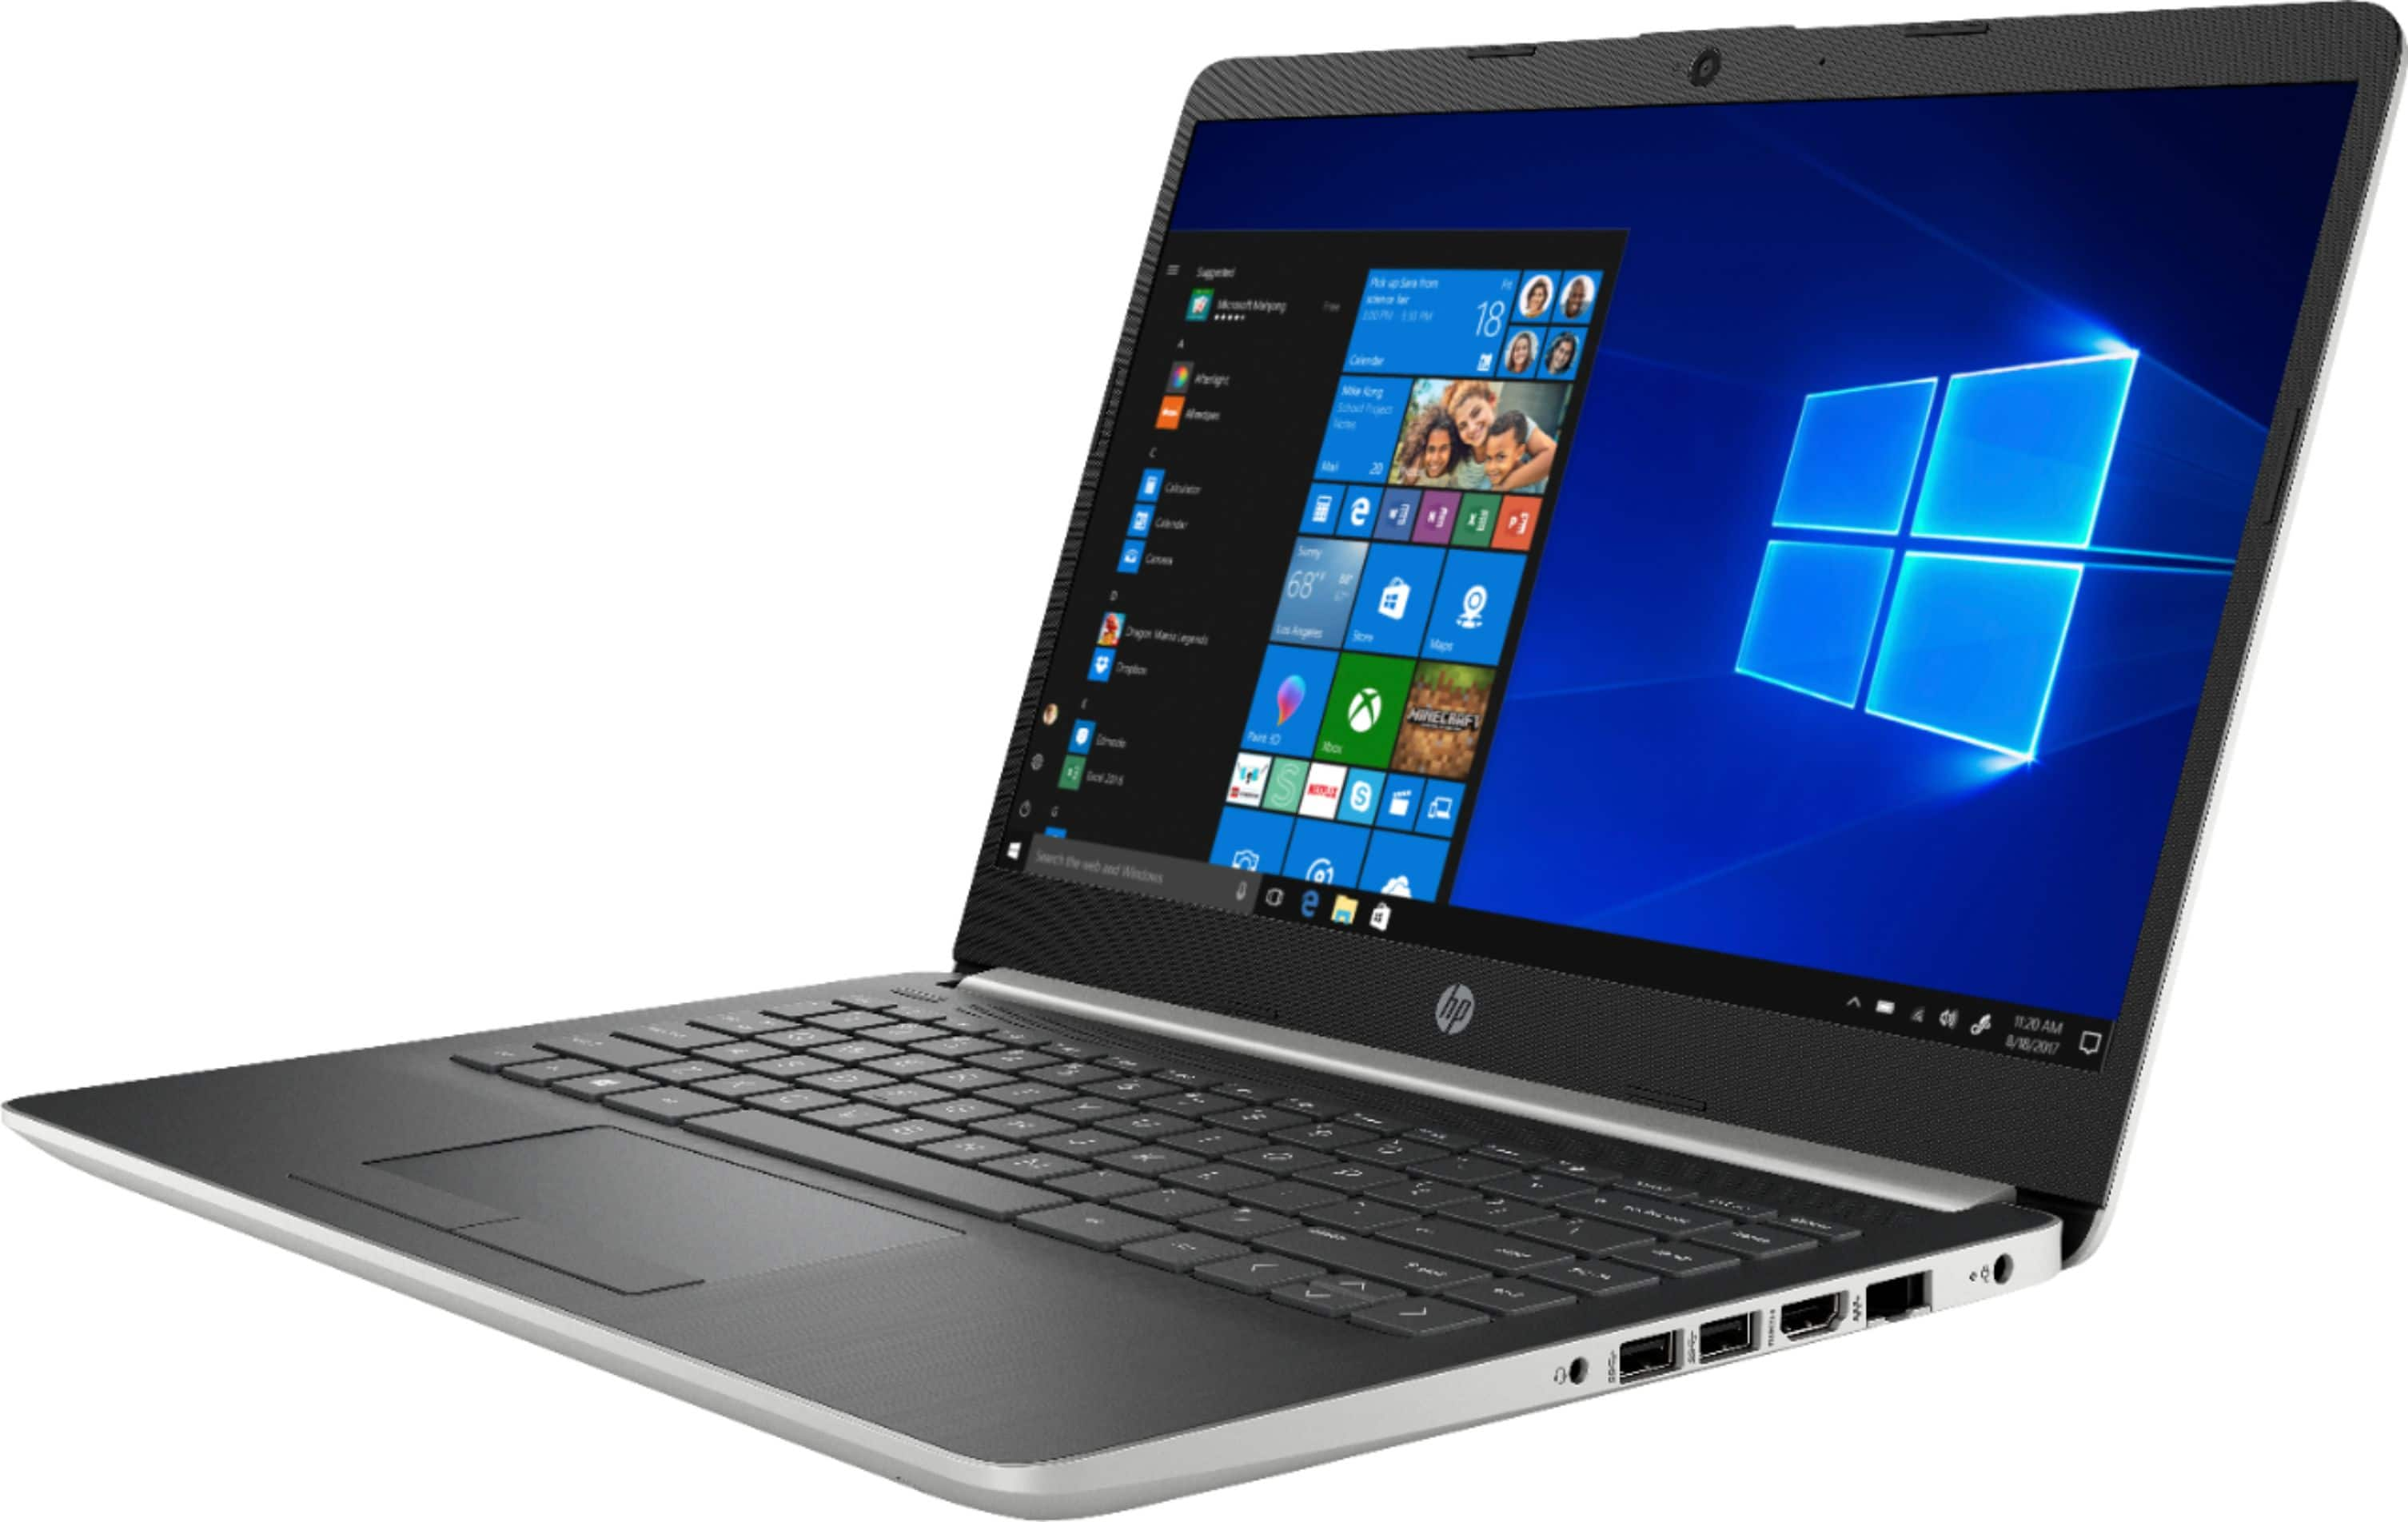 """HP - 14"""" Laptop - AMD A9-Series - 4GB Memory - AMD Radeon R5 Graphics - 128GB Solid State Drive - Ash Silver Keyboard Frame, Natural Silver $200"""